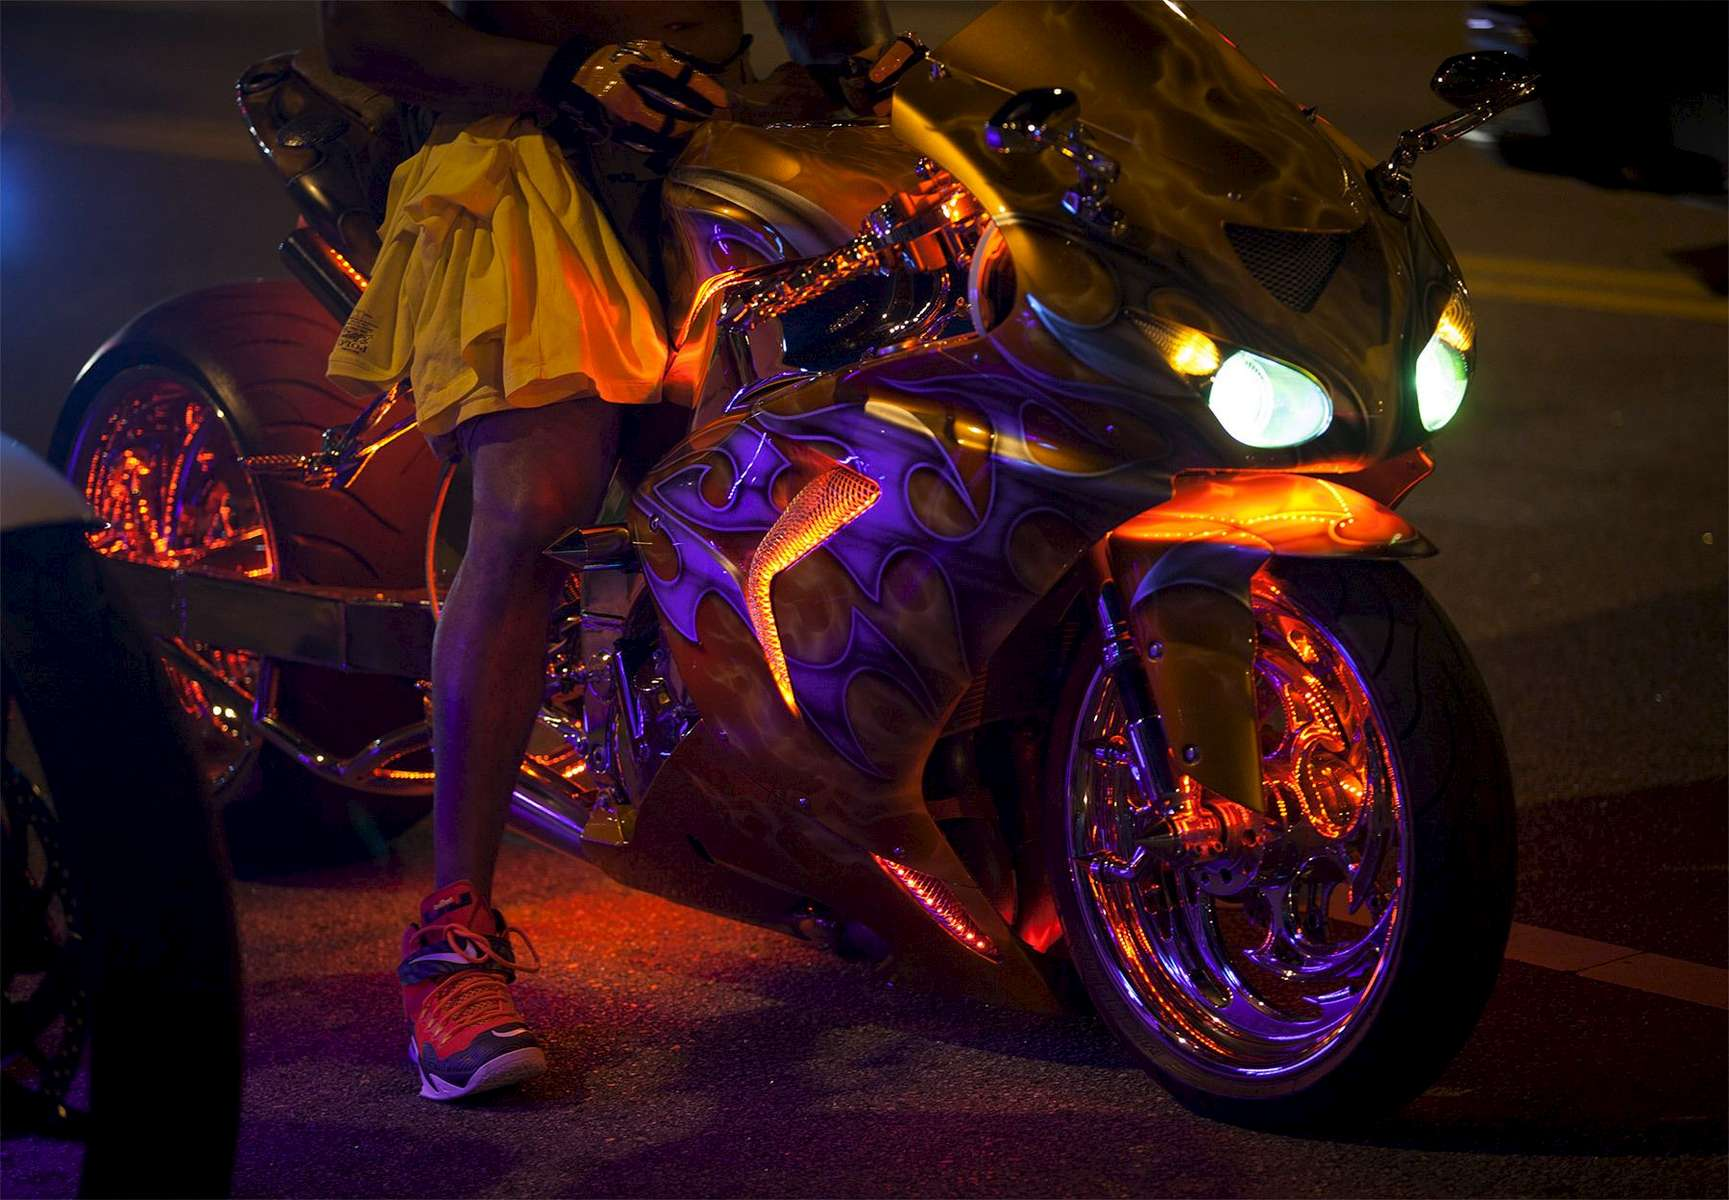 A customized sport bike is lit in neon lights as it's driver waits in traffic on Ocean Boulevard during the 2015 Atlantic Beach Memorial Day BikeFest in Myrtle Beach, South Carolina May 24, 2015. After three people were killed and seven wounded in shootings during 2014 Bikefest, State officials called for an end to the event that draws thousands to the family-friendly beach town. Their efforts were unsuccessful. Bikers returned to Myrtle Beach - just a week after a bloody motorcycle gang shootout in Waco, Texas. But this time authorities are more prepared, with dozens of new surveillance cameras and a police force three times the size of last year's. REUTERS/Randall Hill